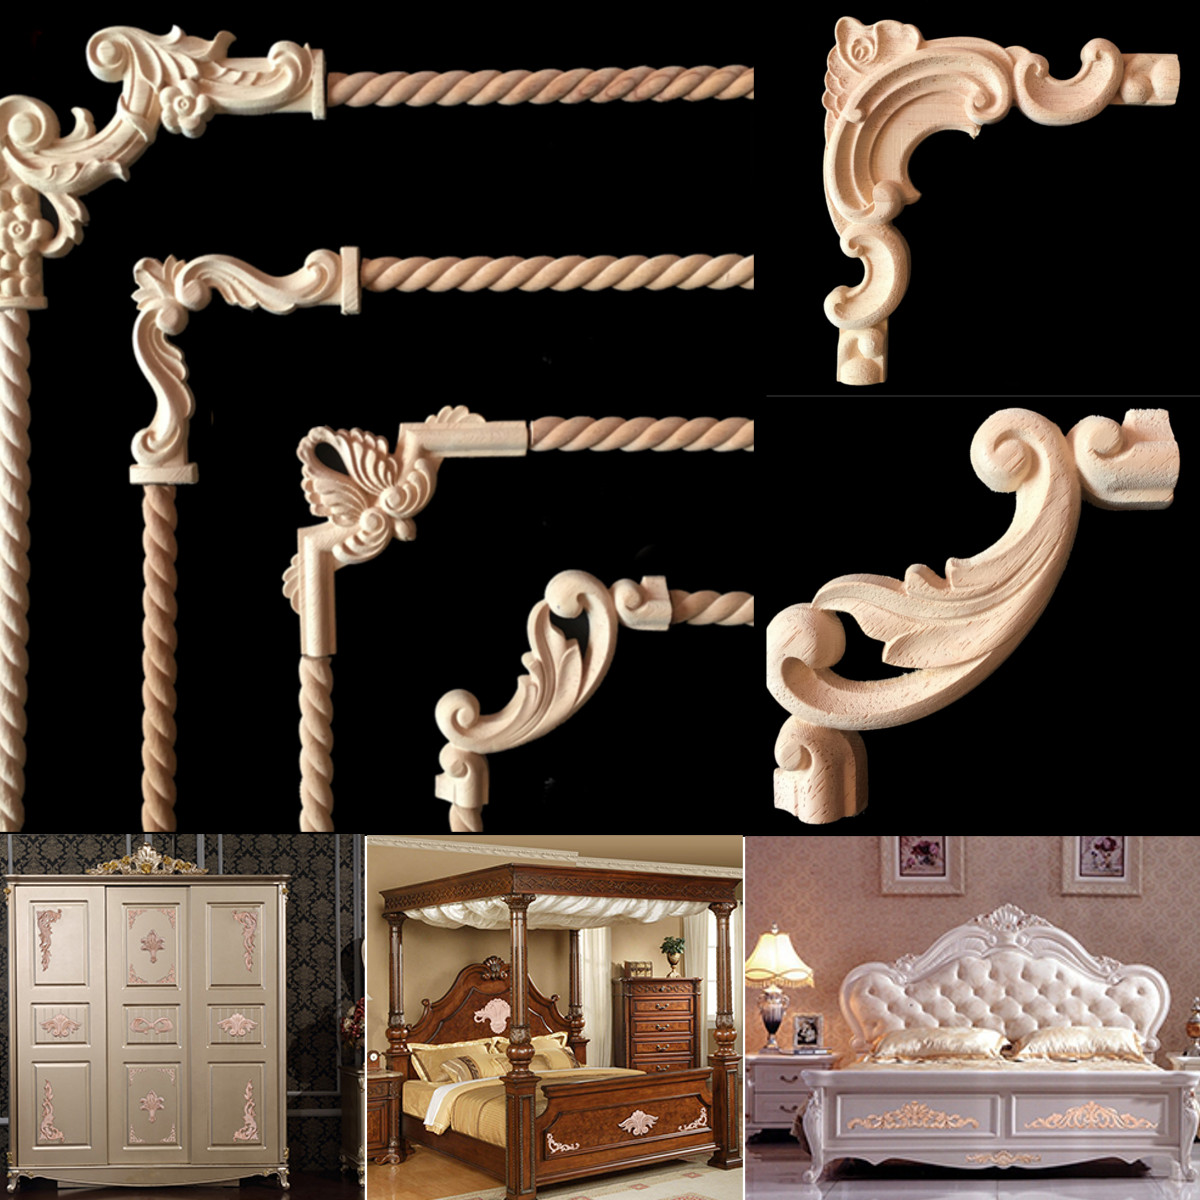 3 Types Rubber Wood Carved Corner Onlay Applique Frame Unpainted Furniture Decor Wall Door Woodcarving Furniture Accessories